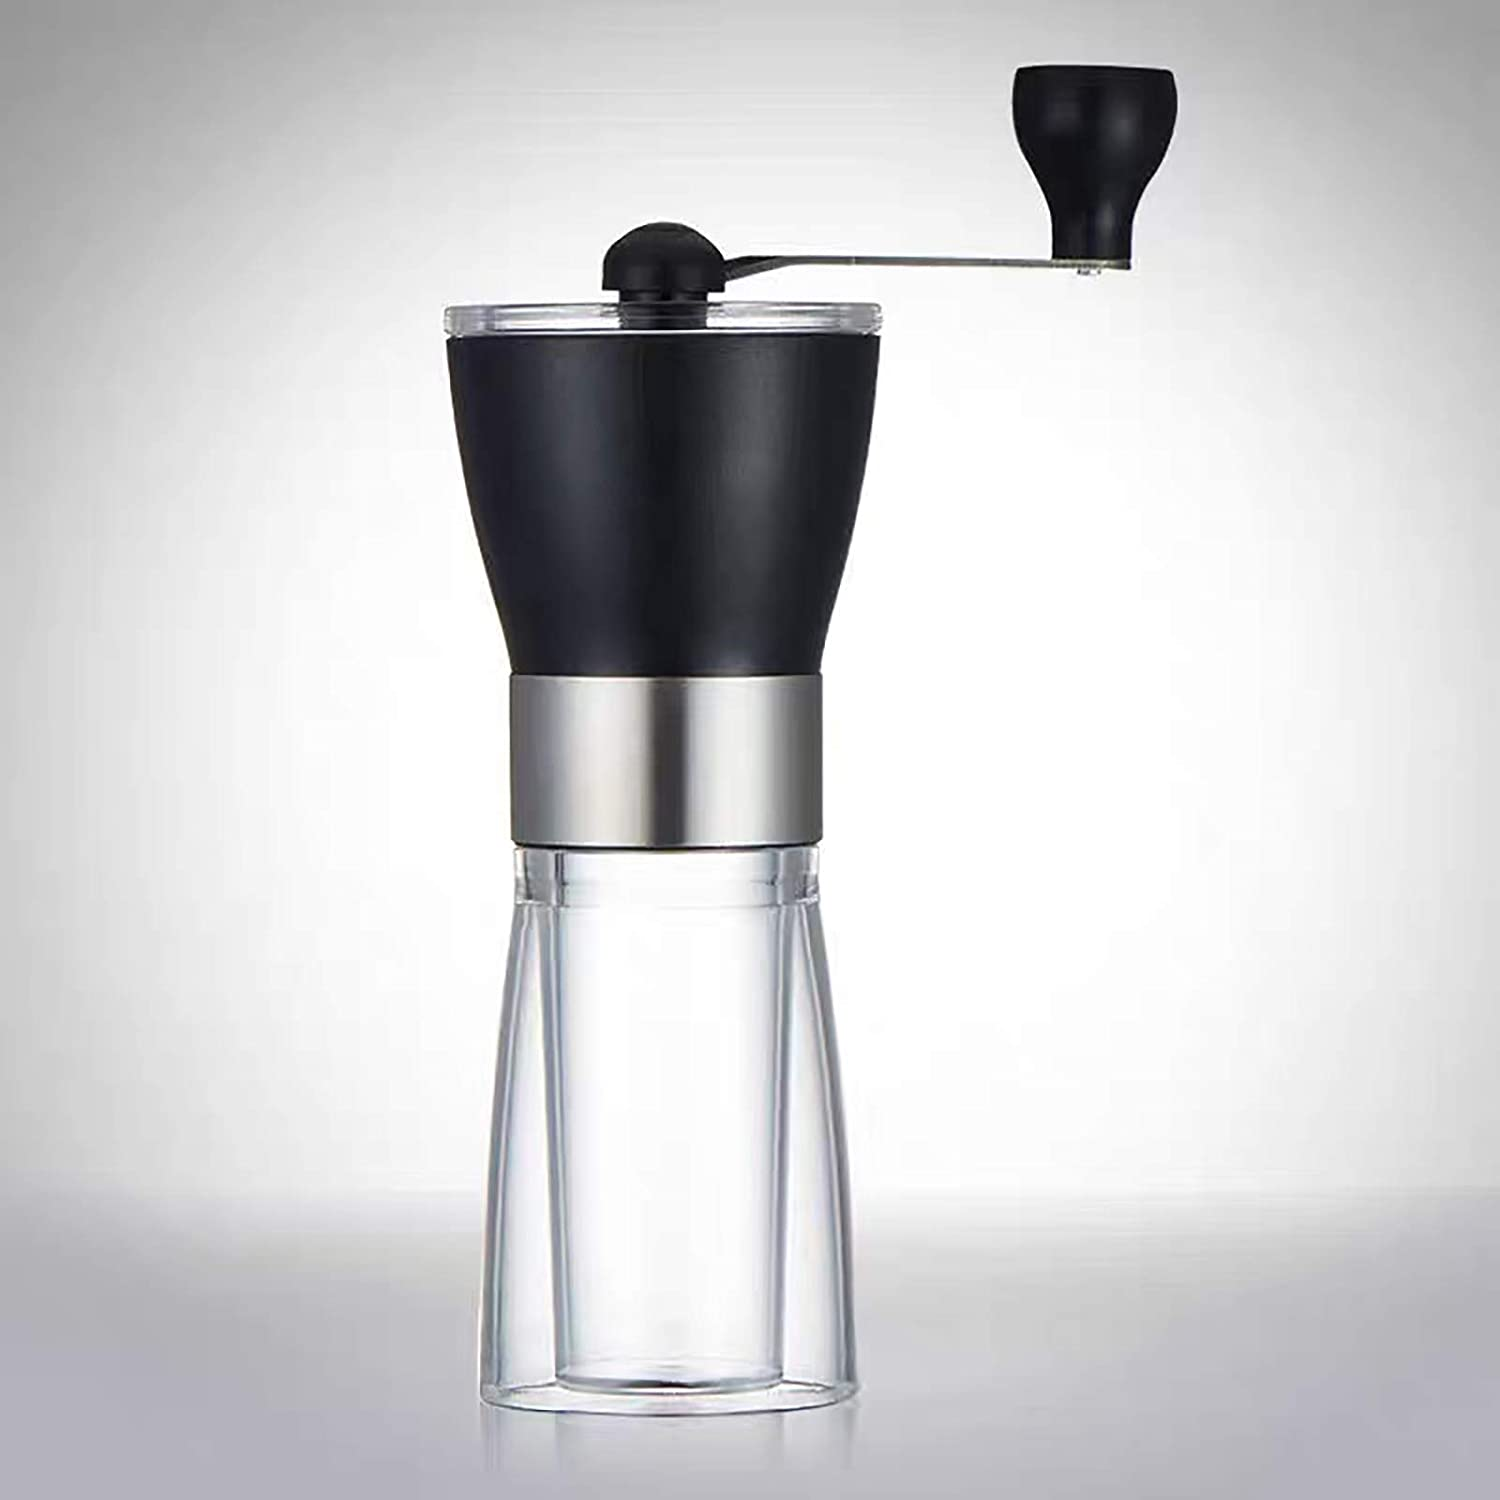 New life N+A Hand crank Popular brand in the world coffee bean Portable manual grinder Manua